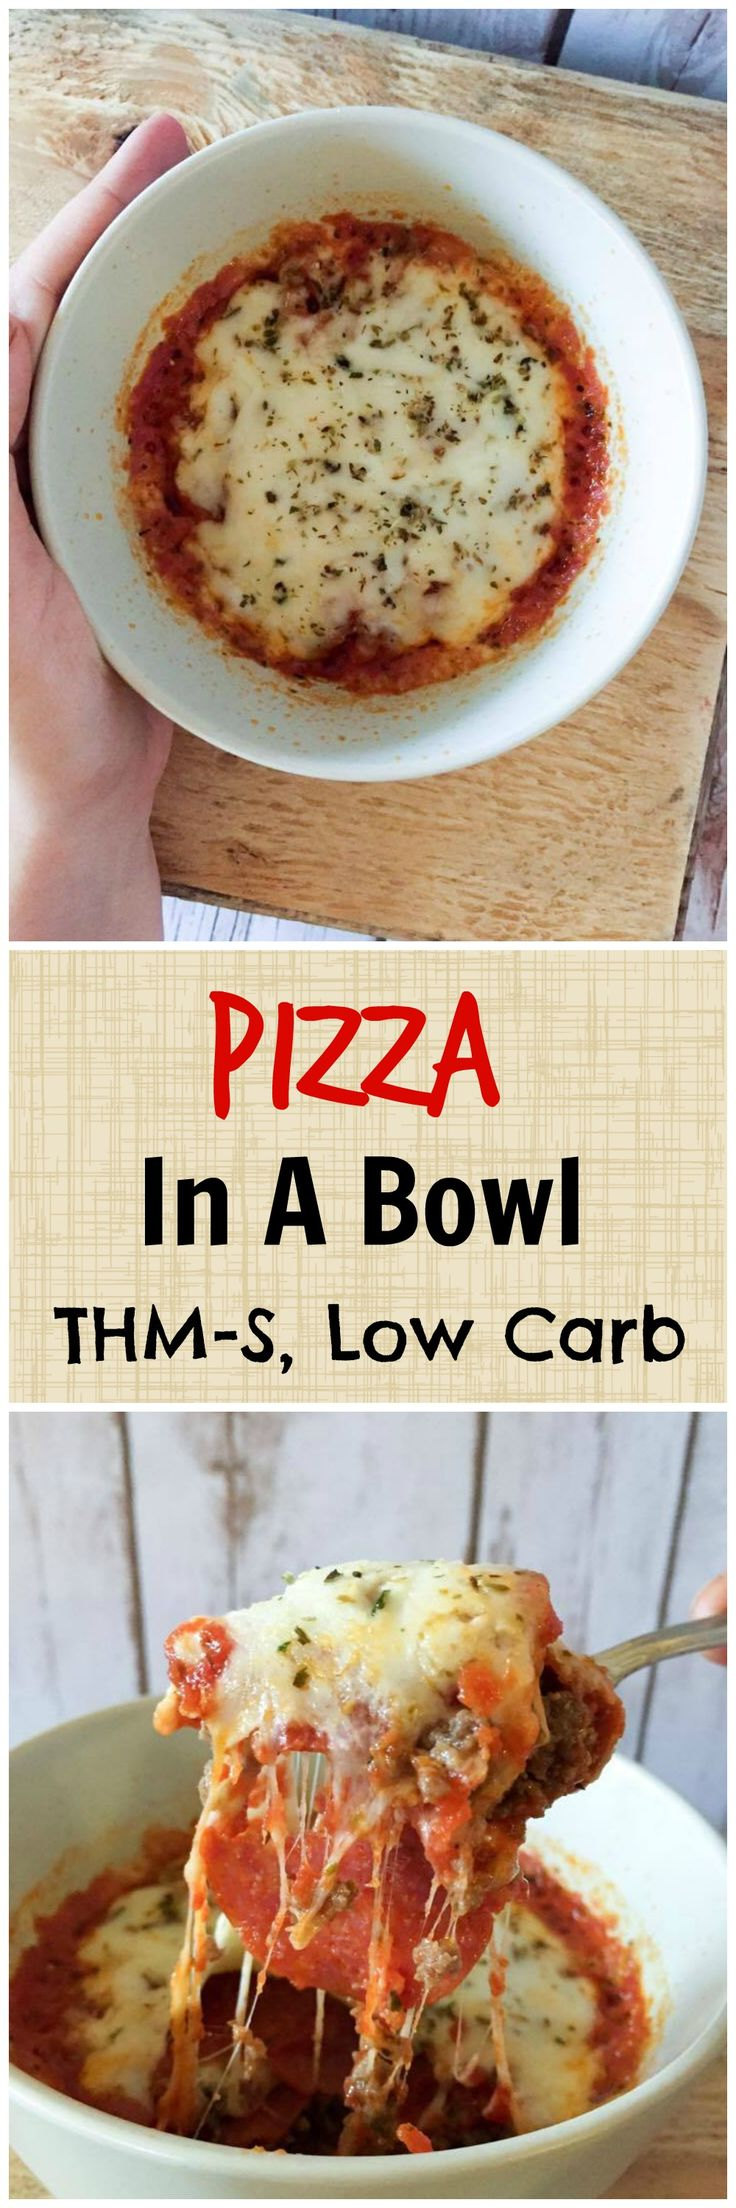 Pizza in a Bowl {Low Carb, THM-S} - My Montana Kitchen